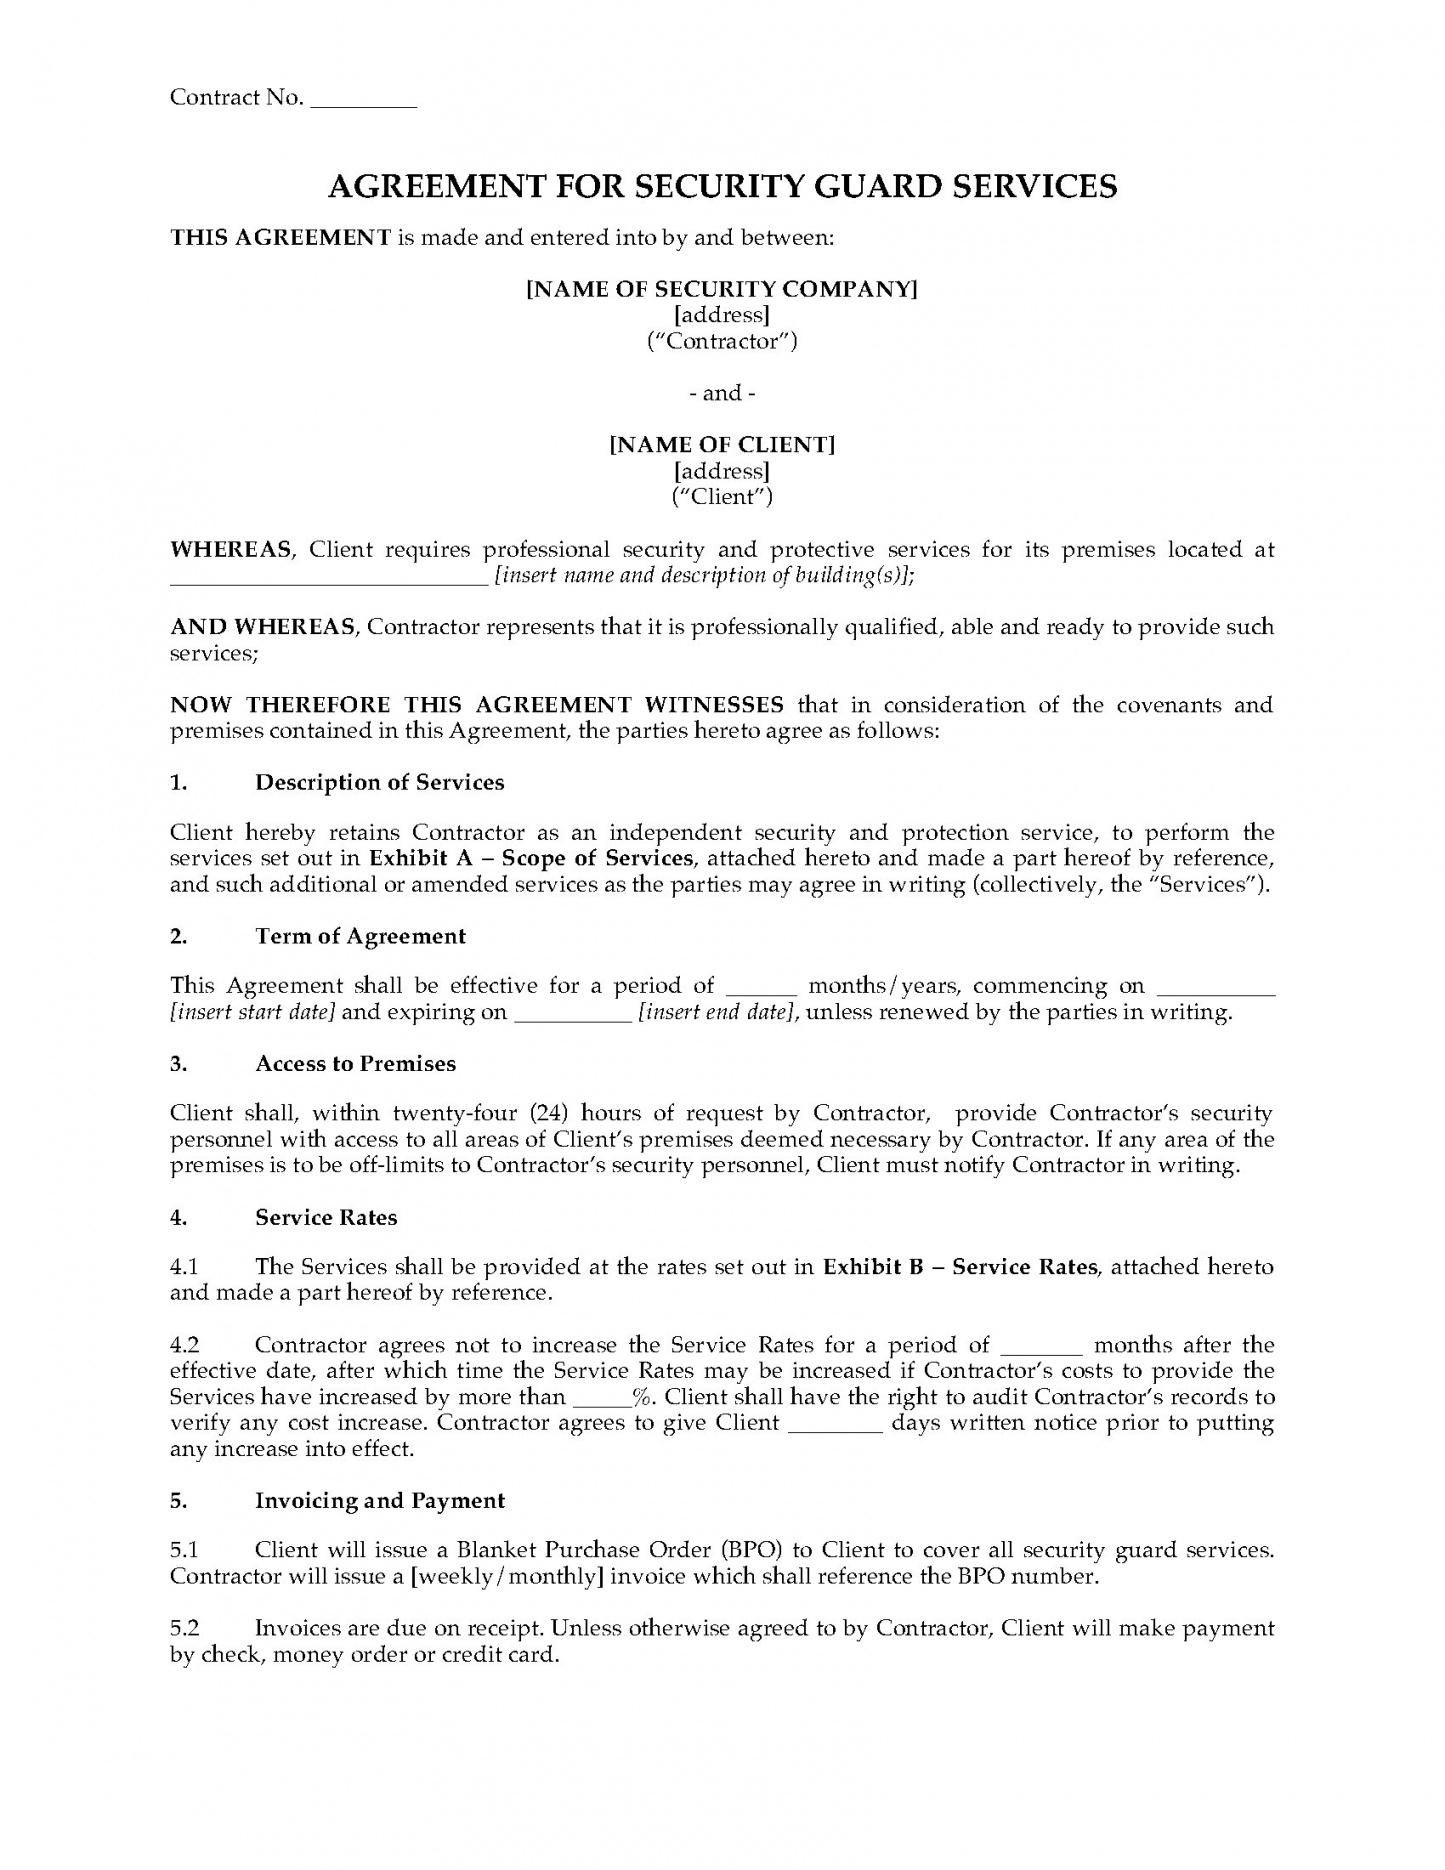 Pin On Agreement Templates Security guard contract agreement template